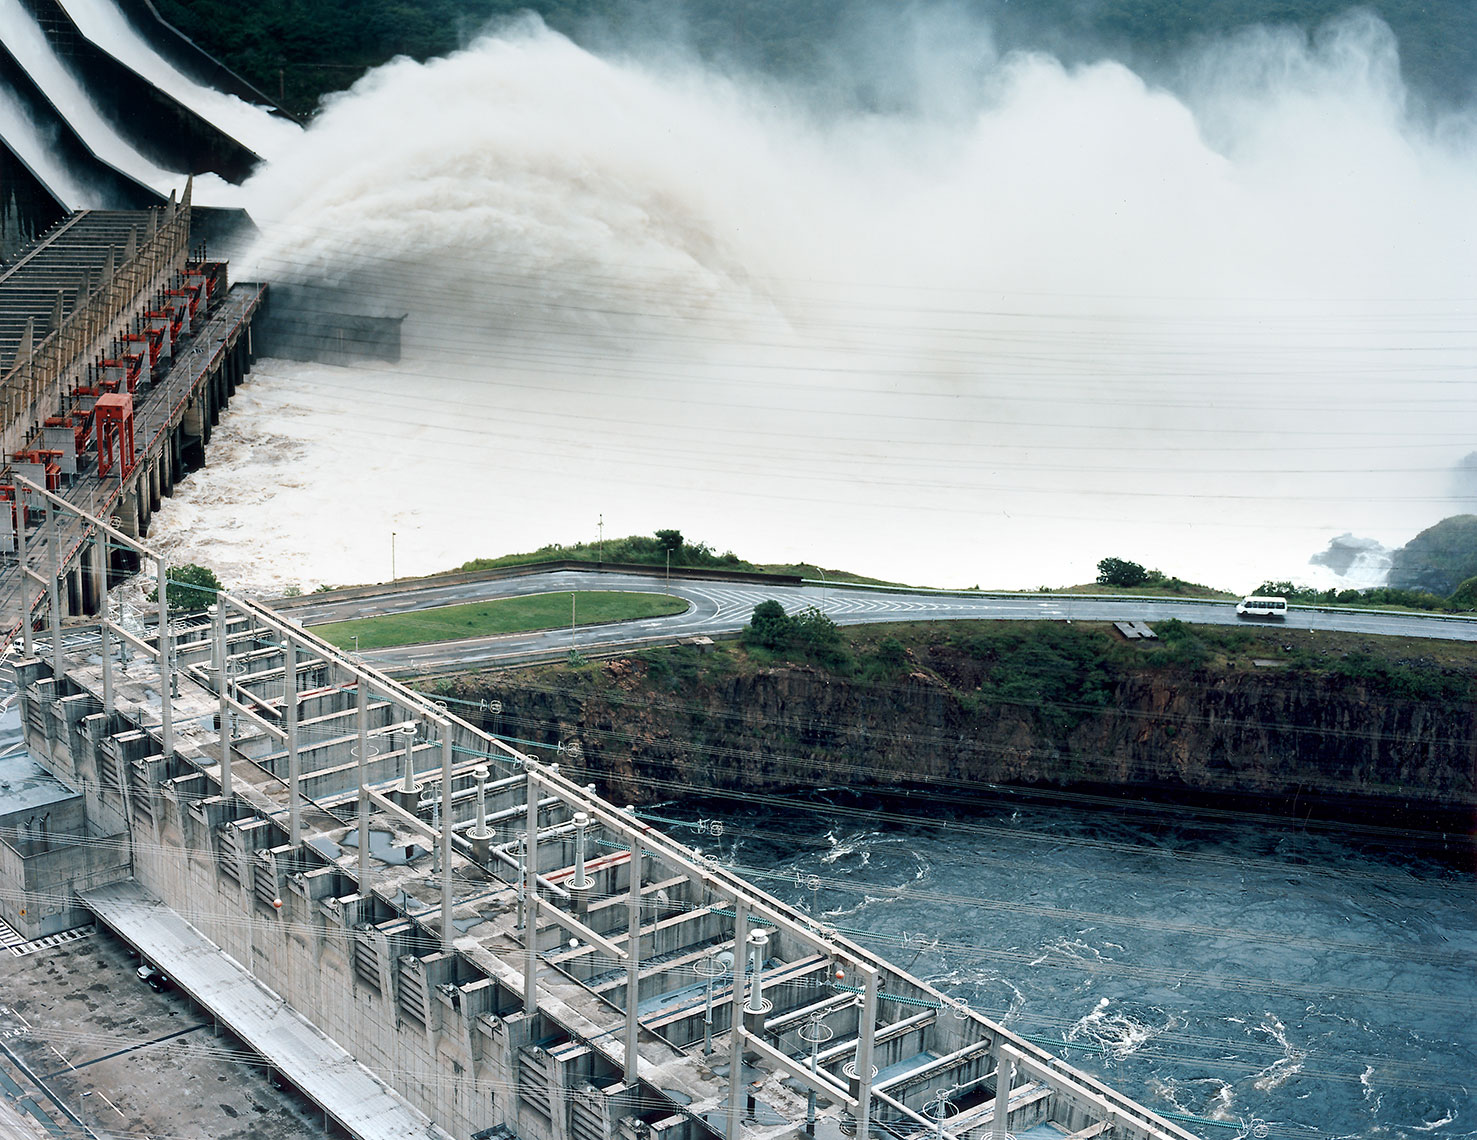 Hydro_Power_Projects_51_1140